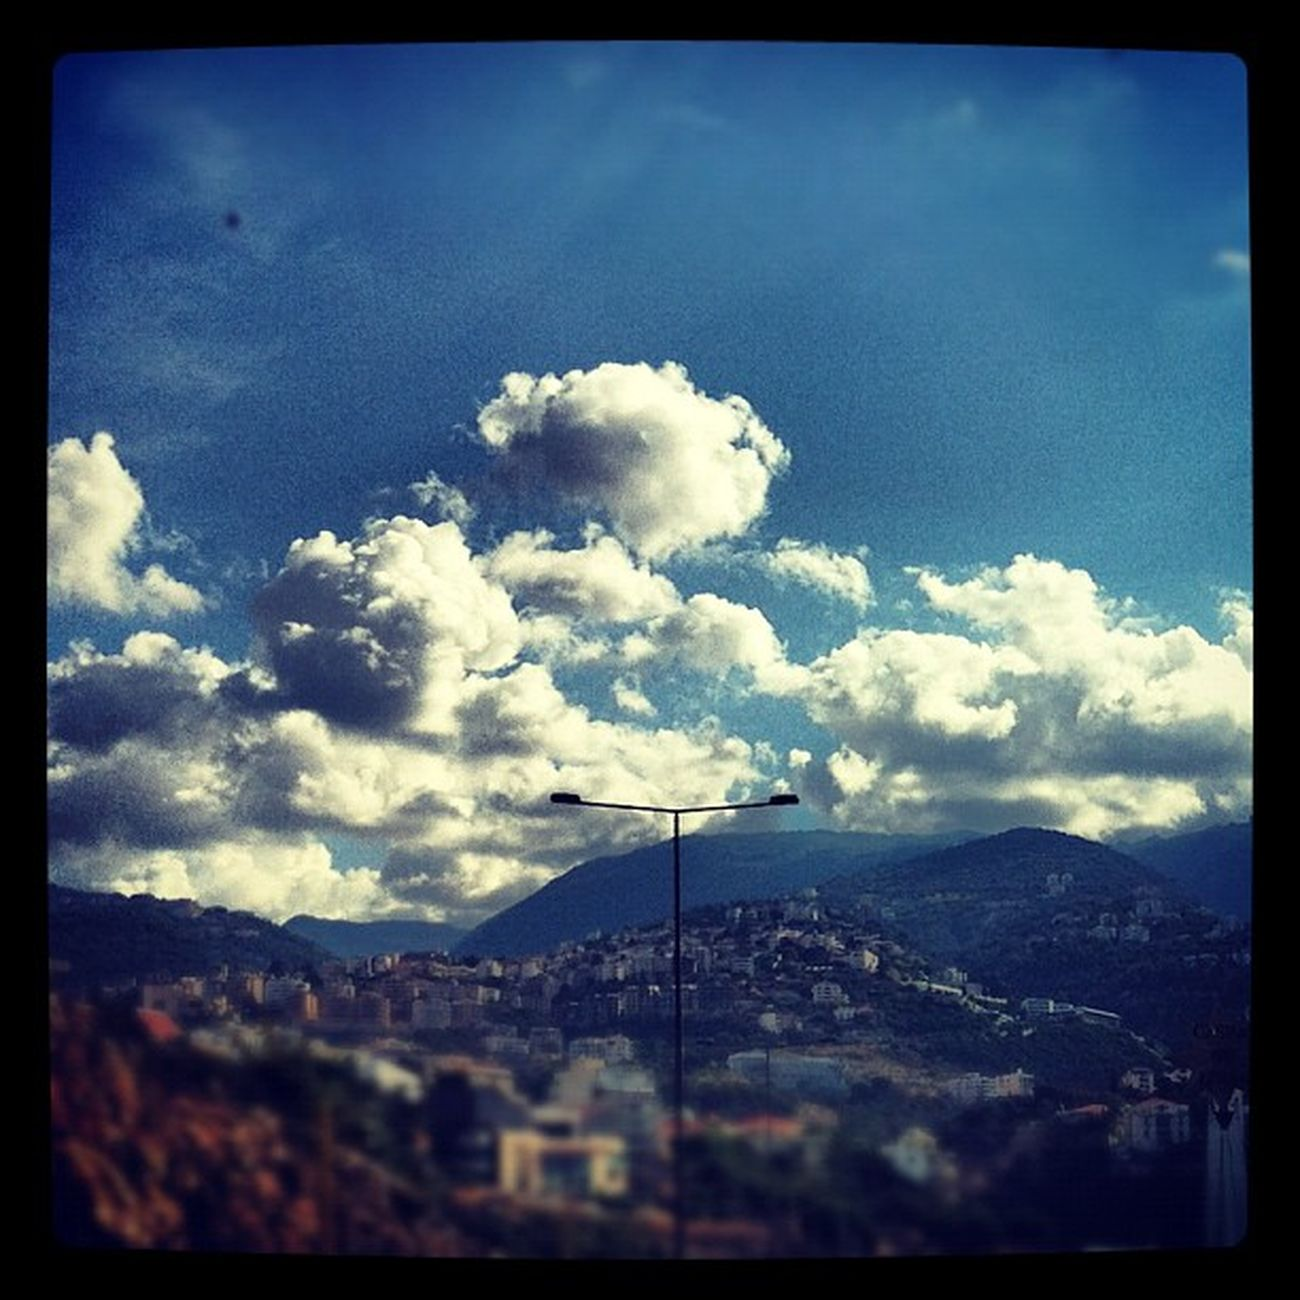 Morning Clouds Mountains Sky blue lebanon tabarja ghazir igerslebanon october 2012 instadaily igersbeirut instamood